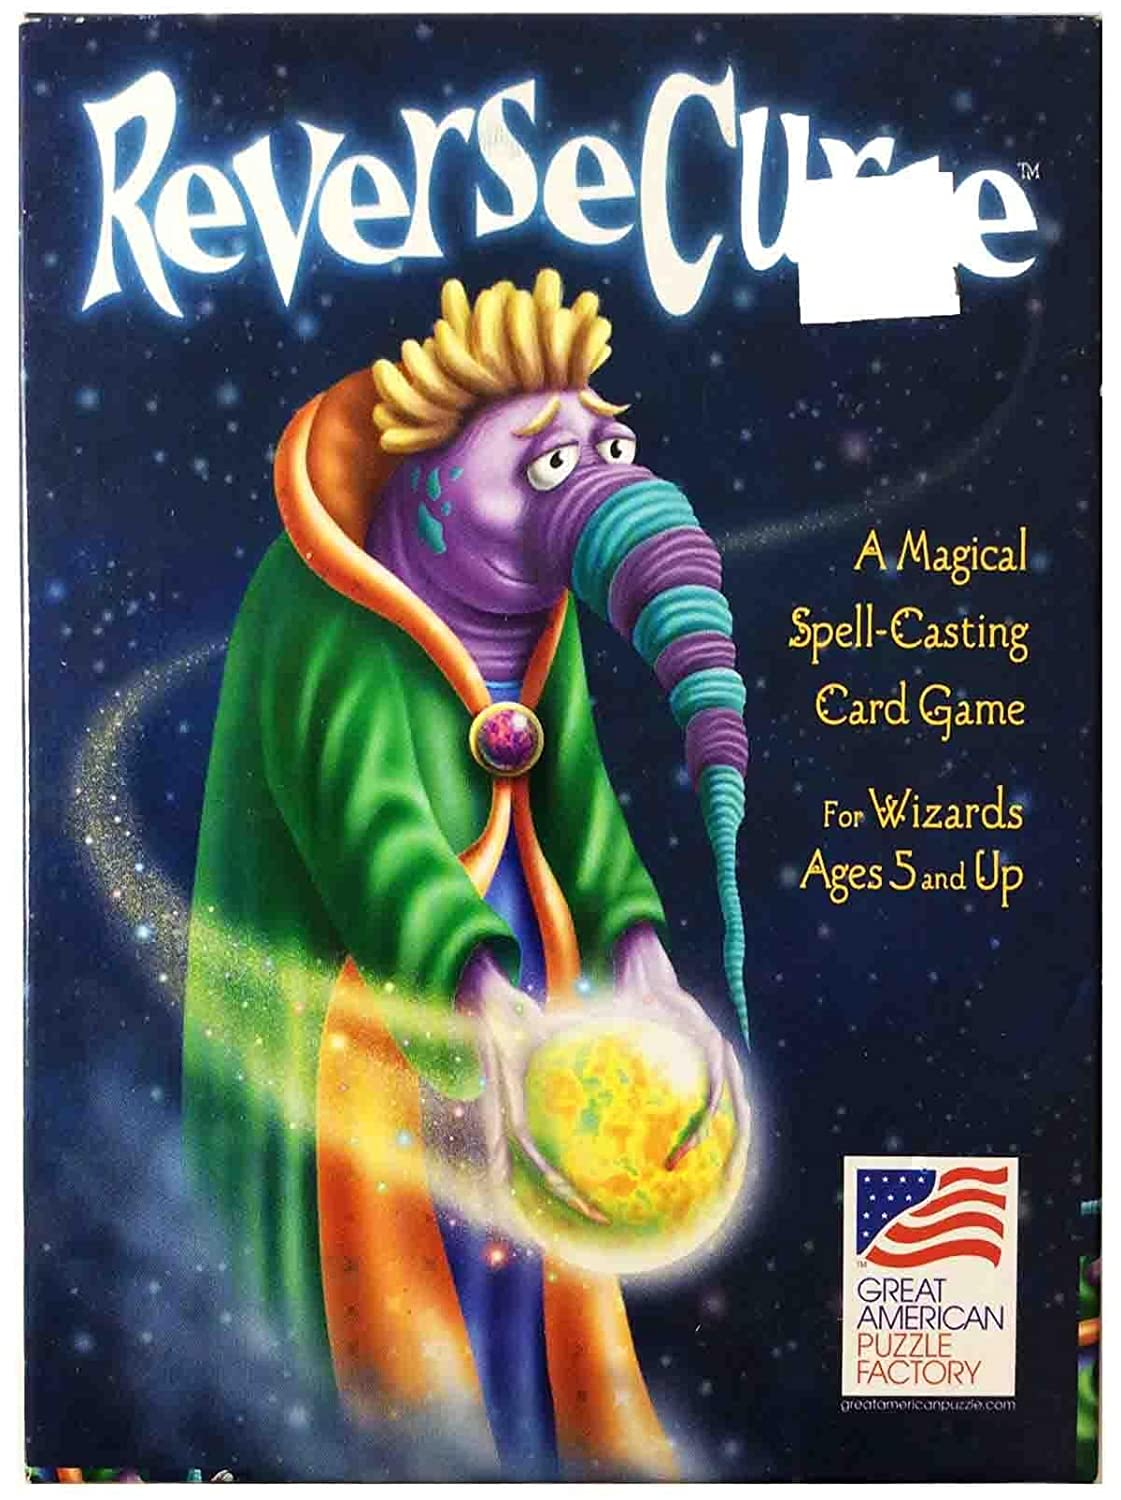 Reverse curse a magical spell casting game